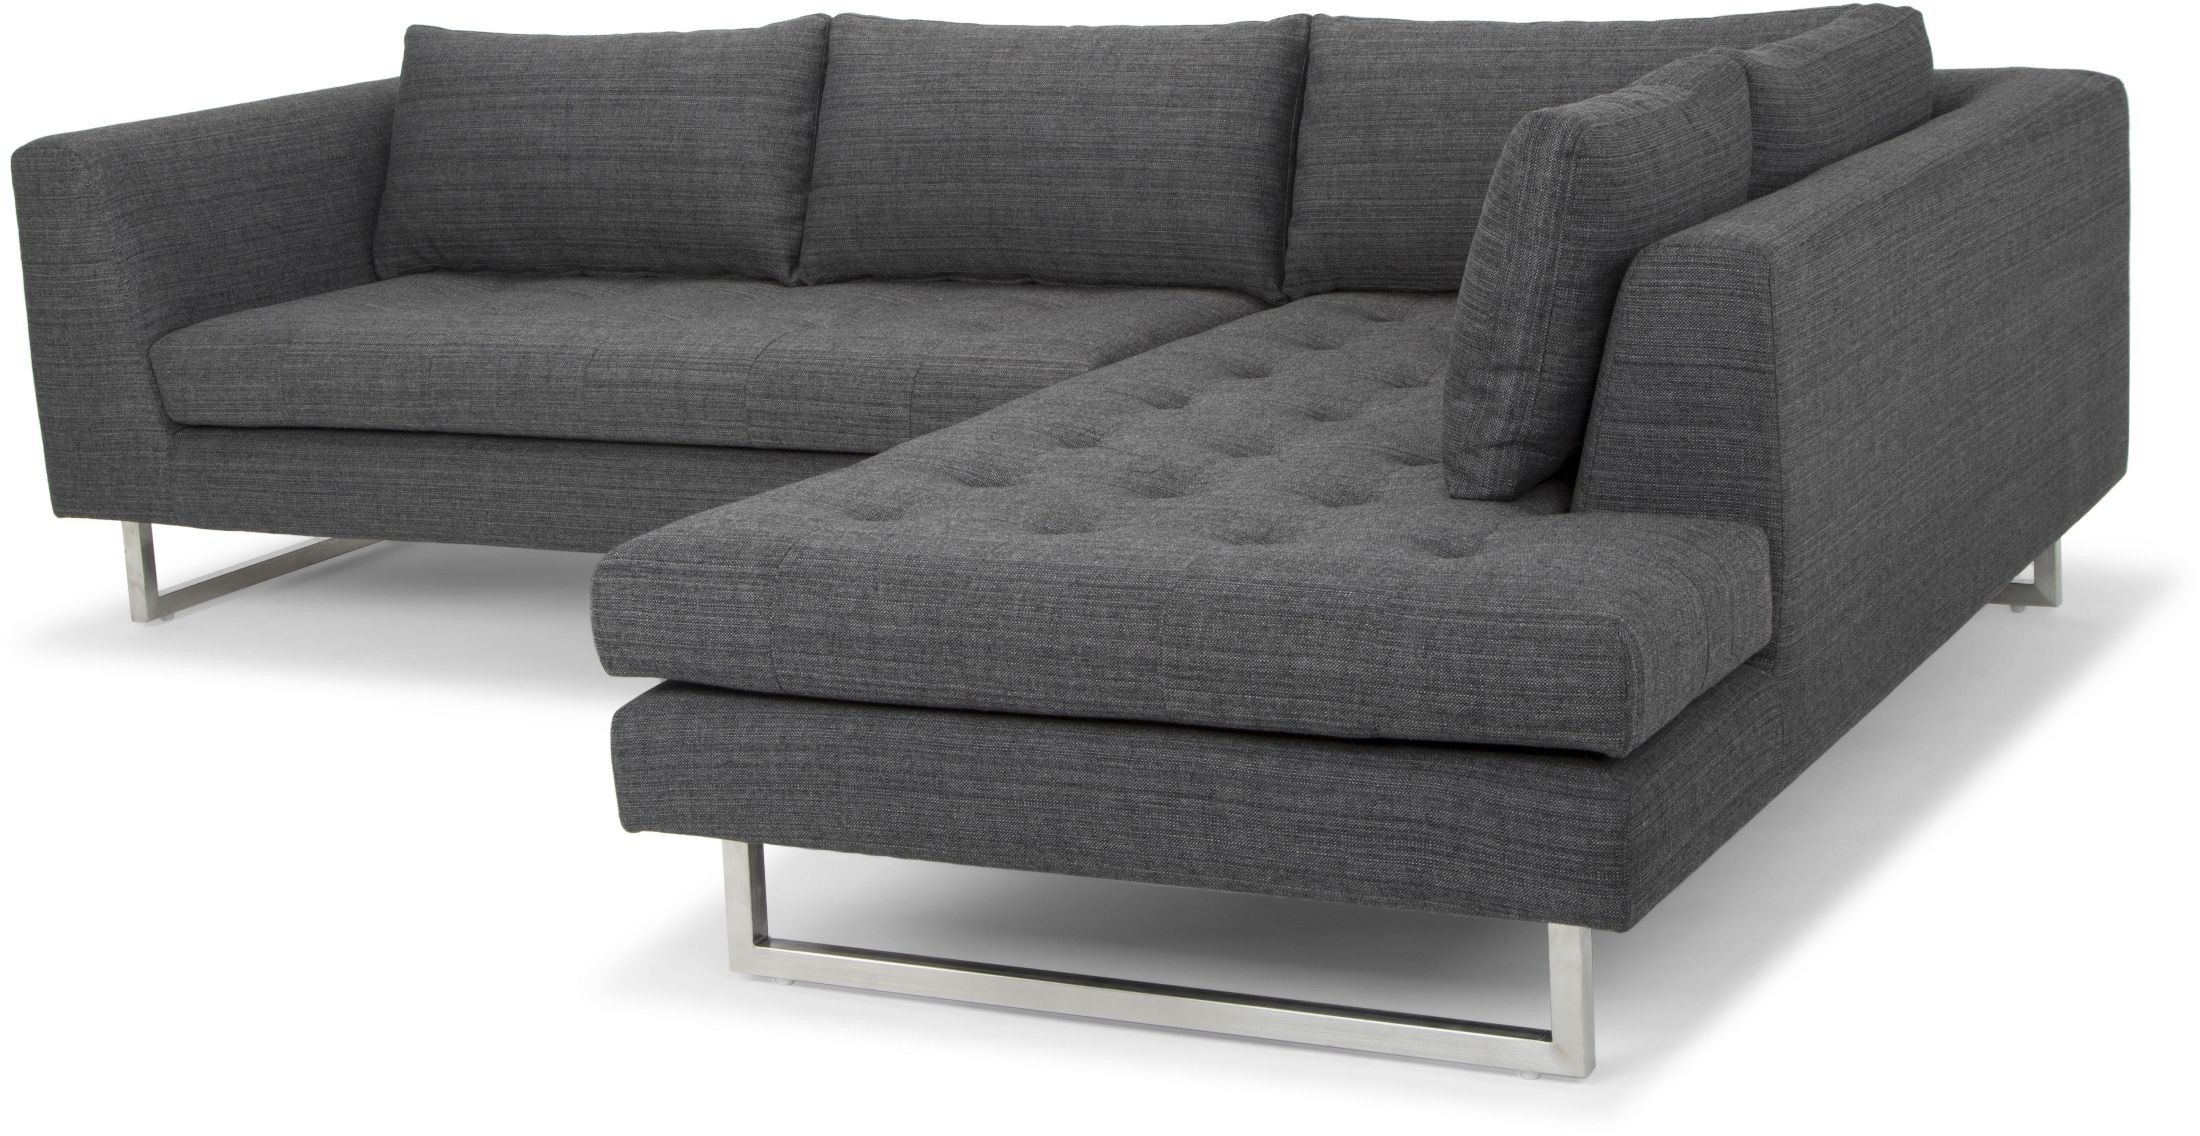 Janis dark grey tweed raf sectional sofa from nuevo for Grey tweed couch